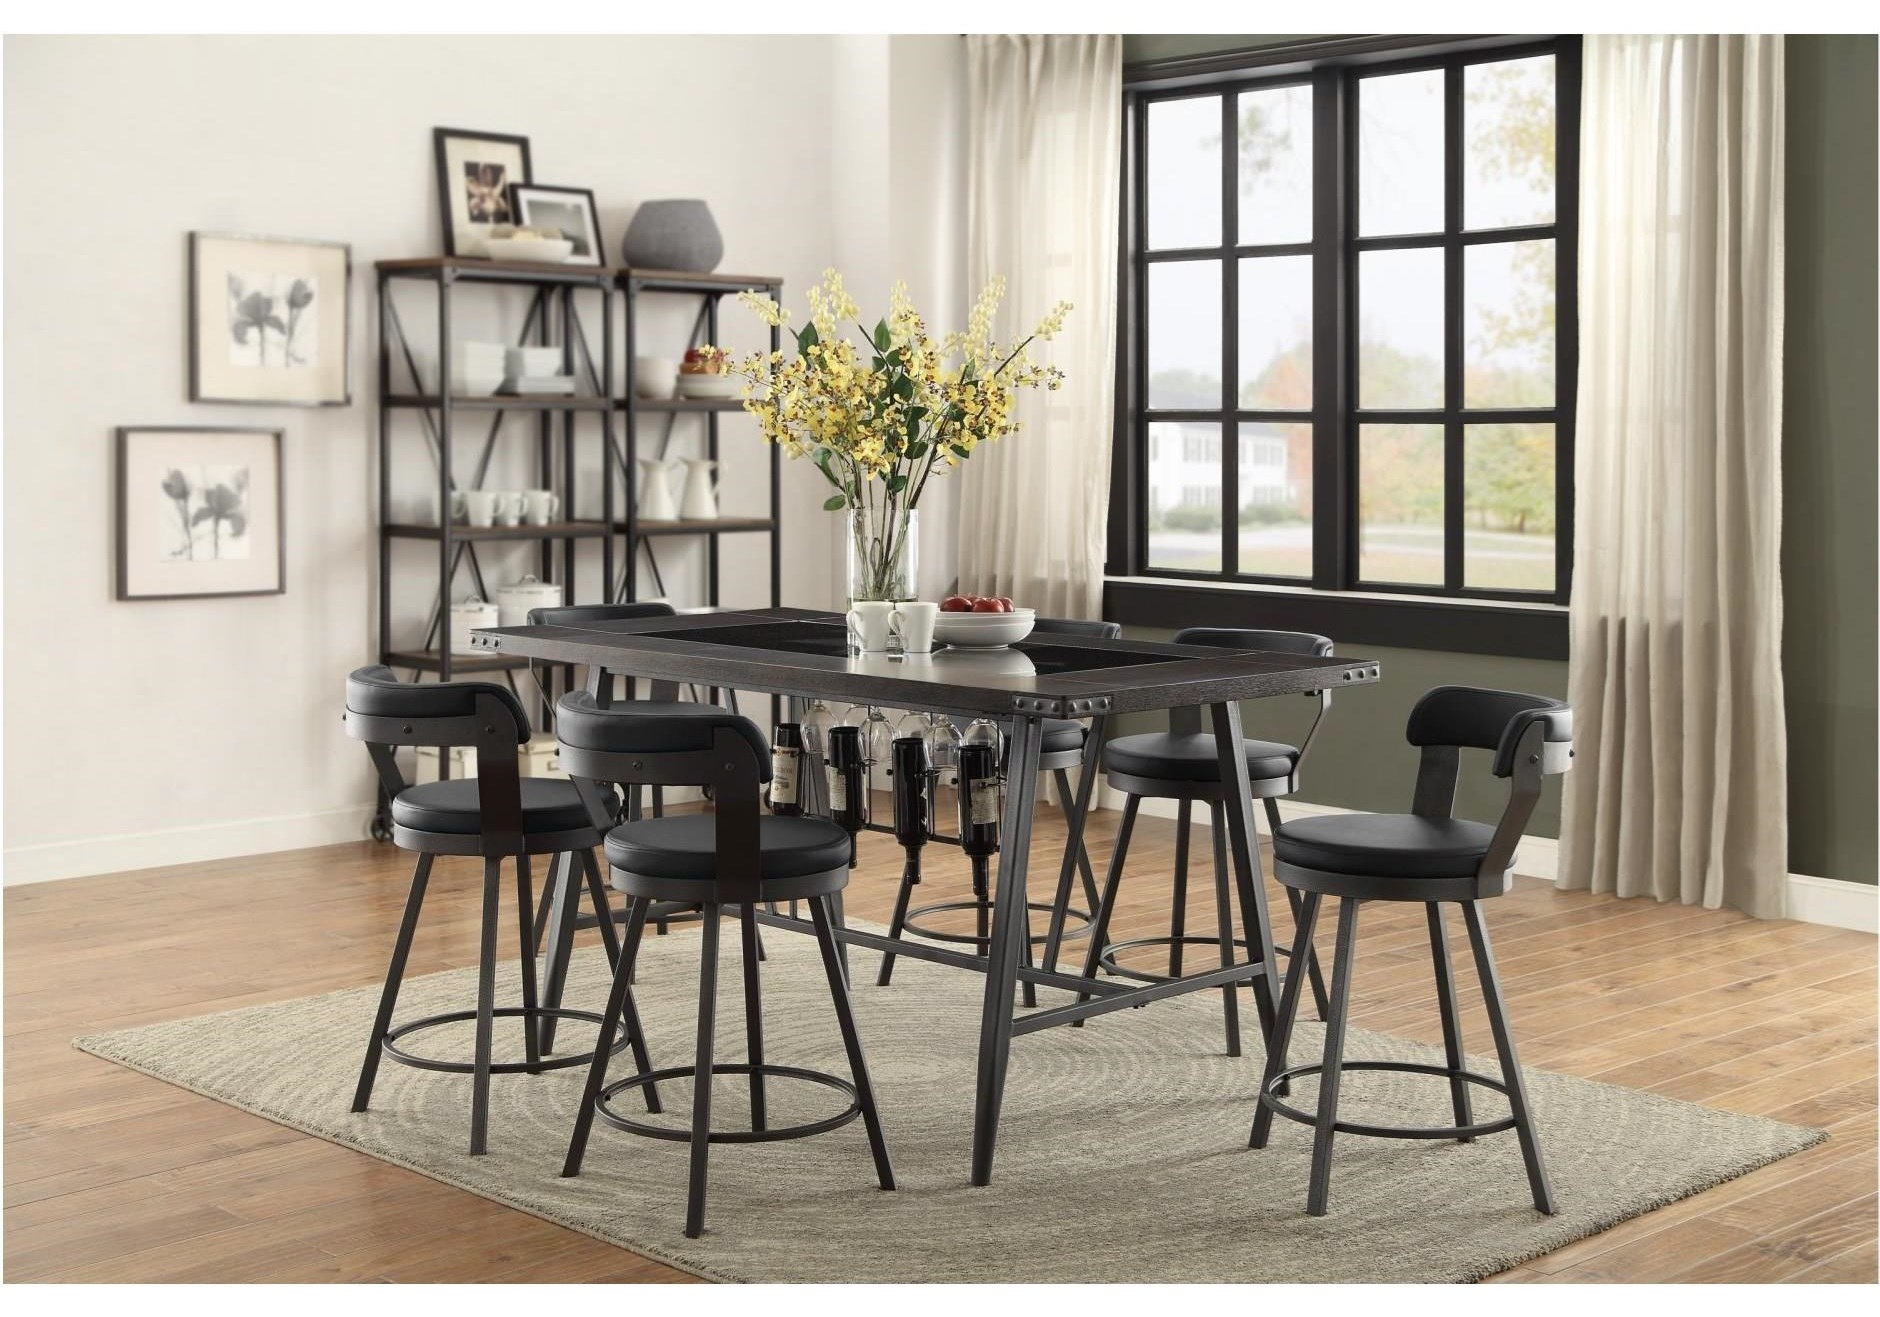 Appert 5 Piece Counter Height Dining Set by Homelegance at Darvin Furniture